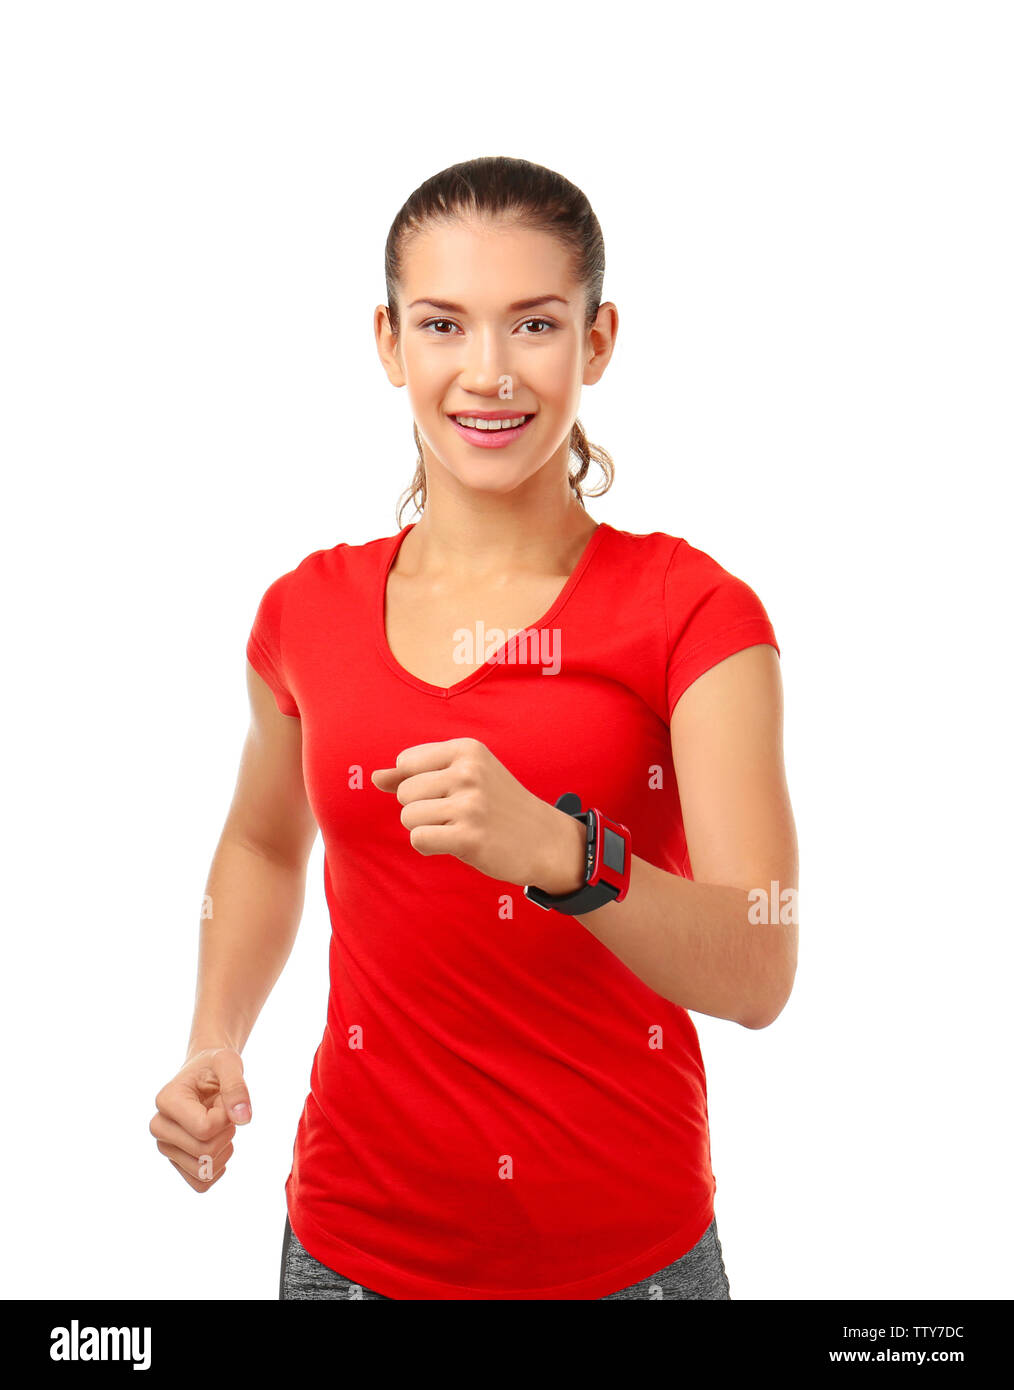 Sporty young woman running on white background - Stock Image